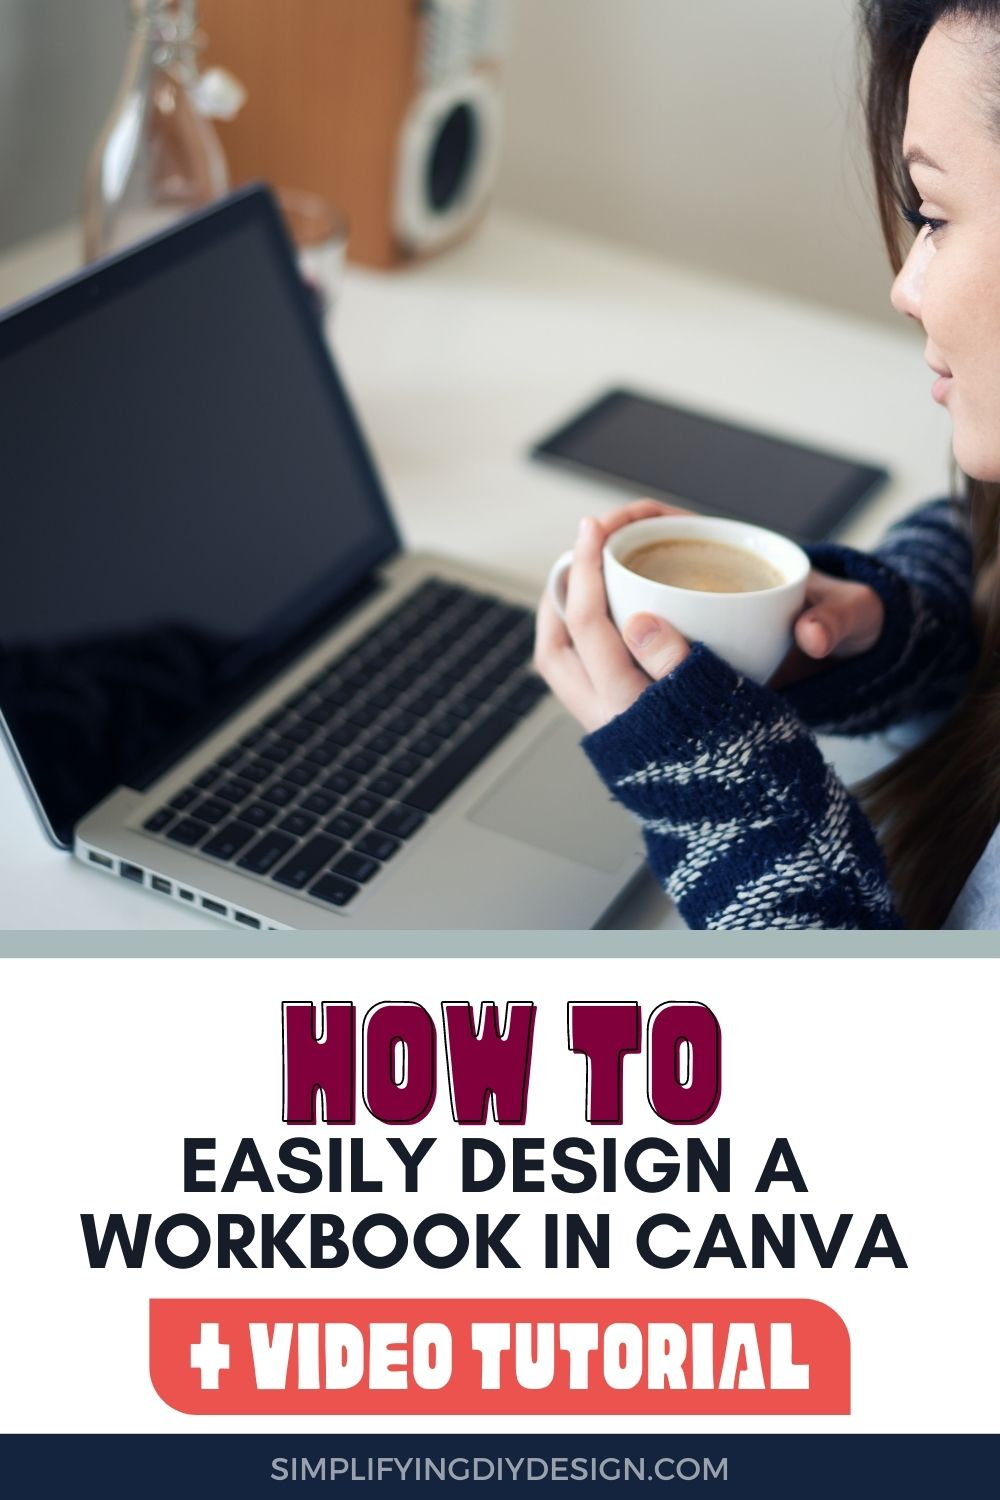 If you're a blogger that is making Digital products or lead magnets then you won't want to miss this post! Find out exactly how to design a workbook in Canva- it's so much easier than I thought!!